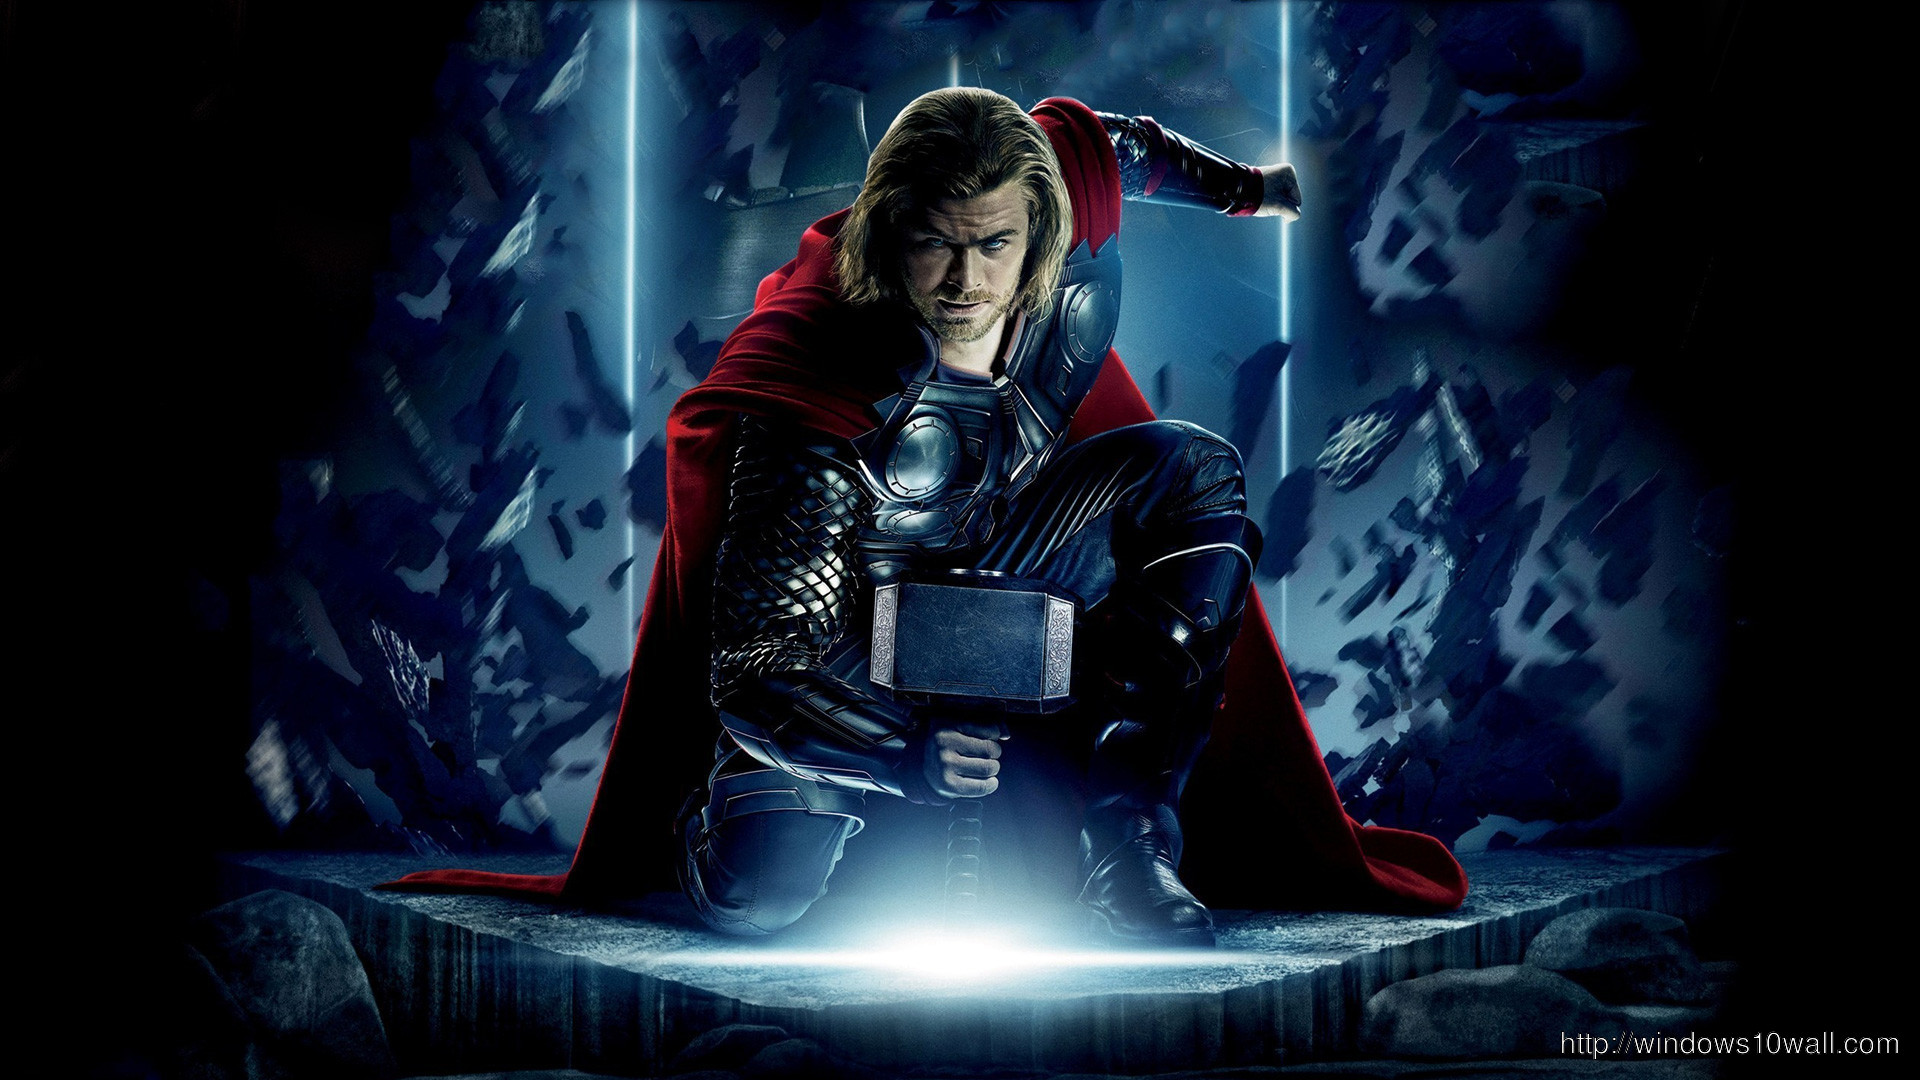 3d Thor Movie Hammer Wallpapers Hd: Thor Movie Background Wallpaper